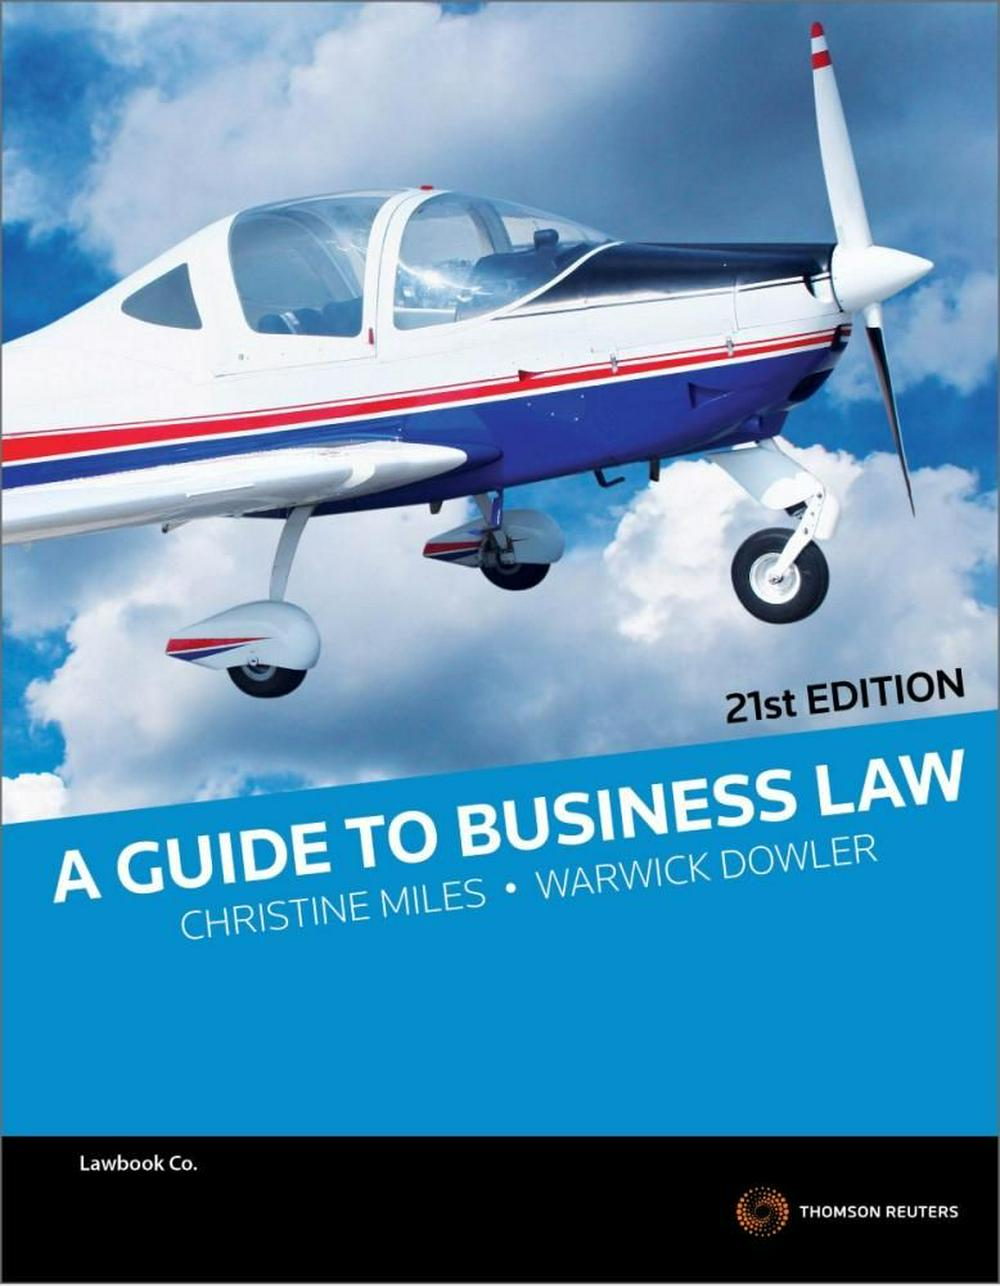 A Guide to Business Law (21st Edition) by Christine Miles, Warwick Dowler, ISBN: 9780455233680